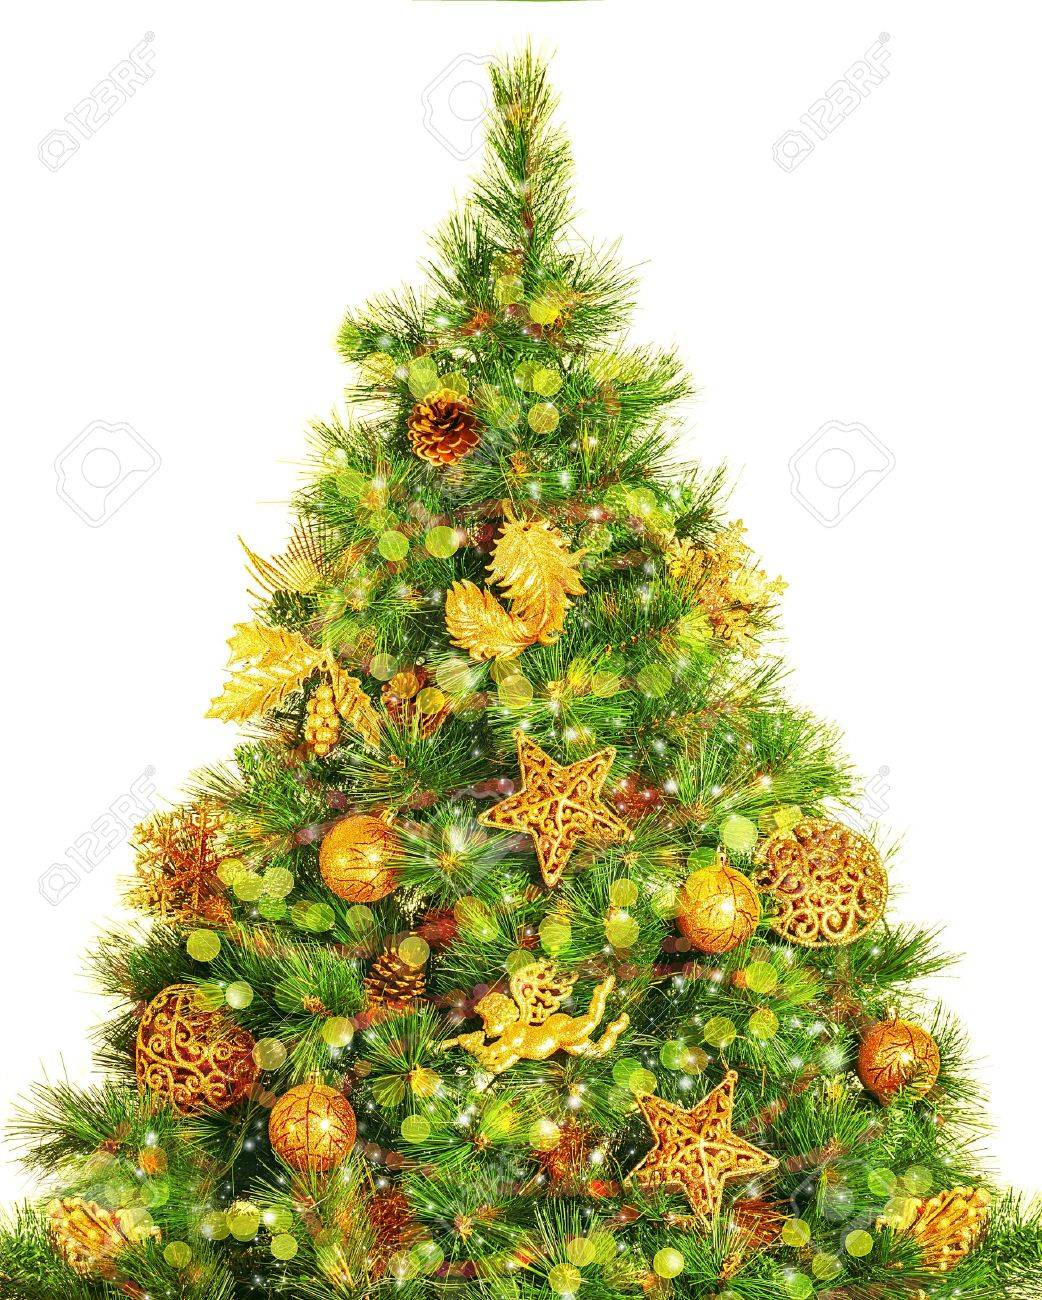 of beautiful decorated Christmas tree isolated on white background, decorative golden angel, stars and festive balls hanging on green fir tree, New Year eve, Xmas celebration Stock Photo - 16854250